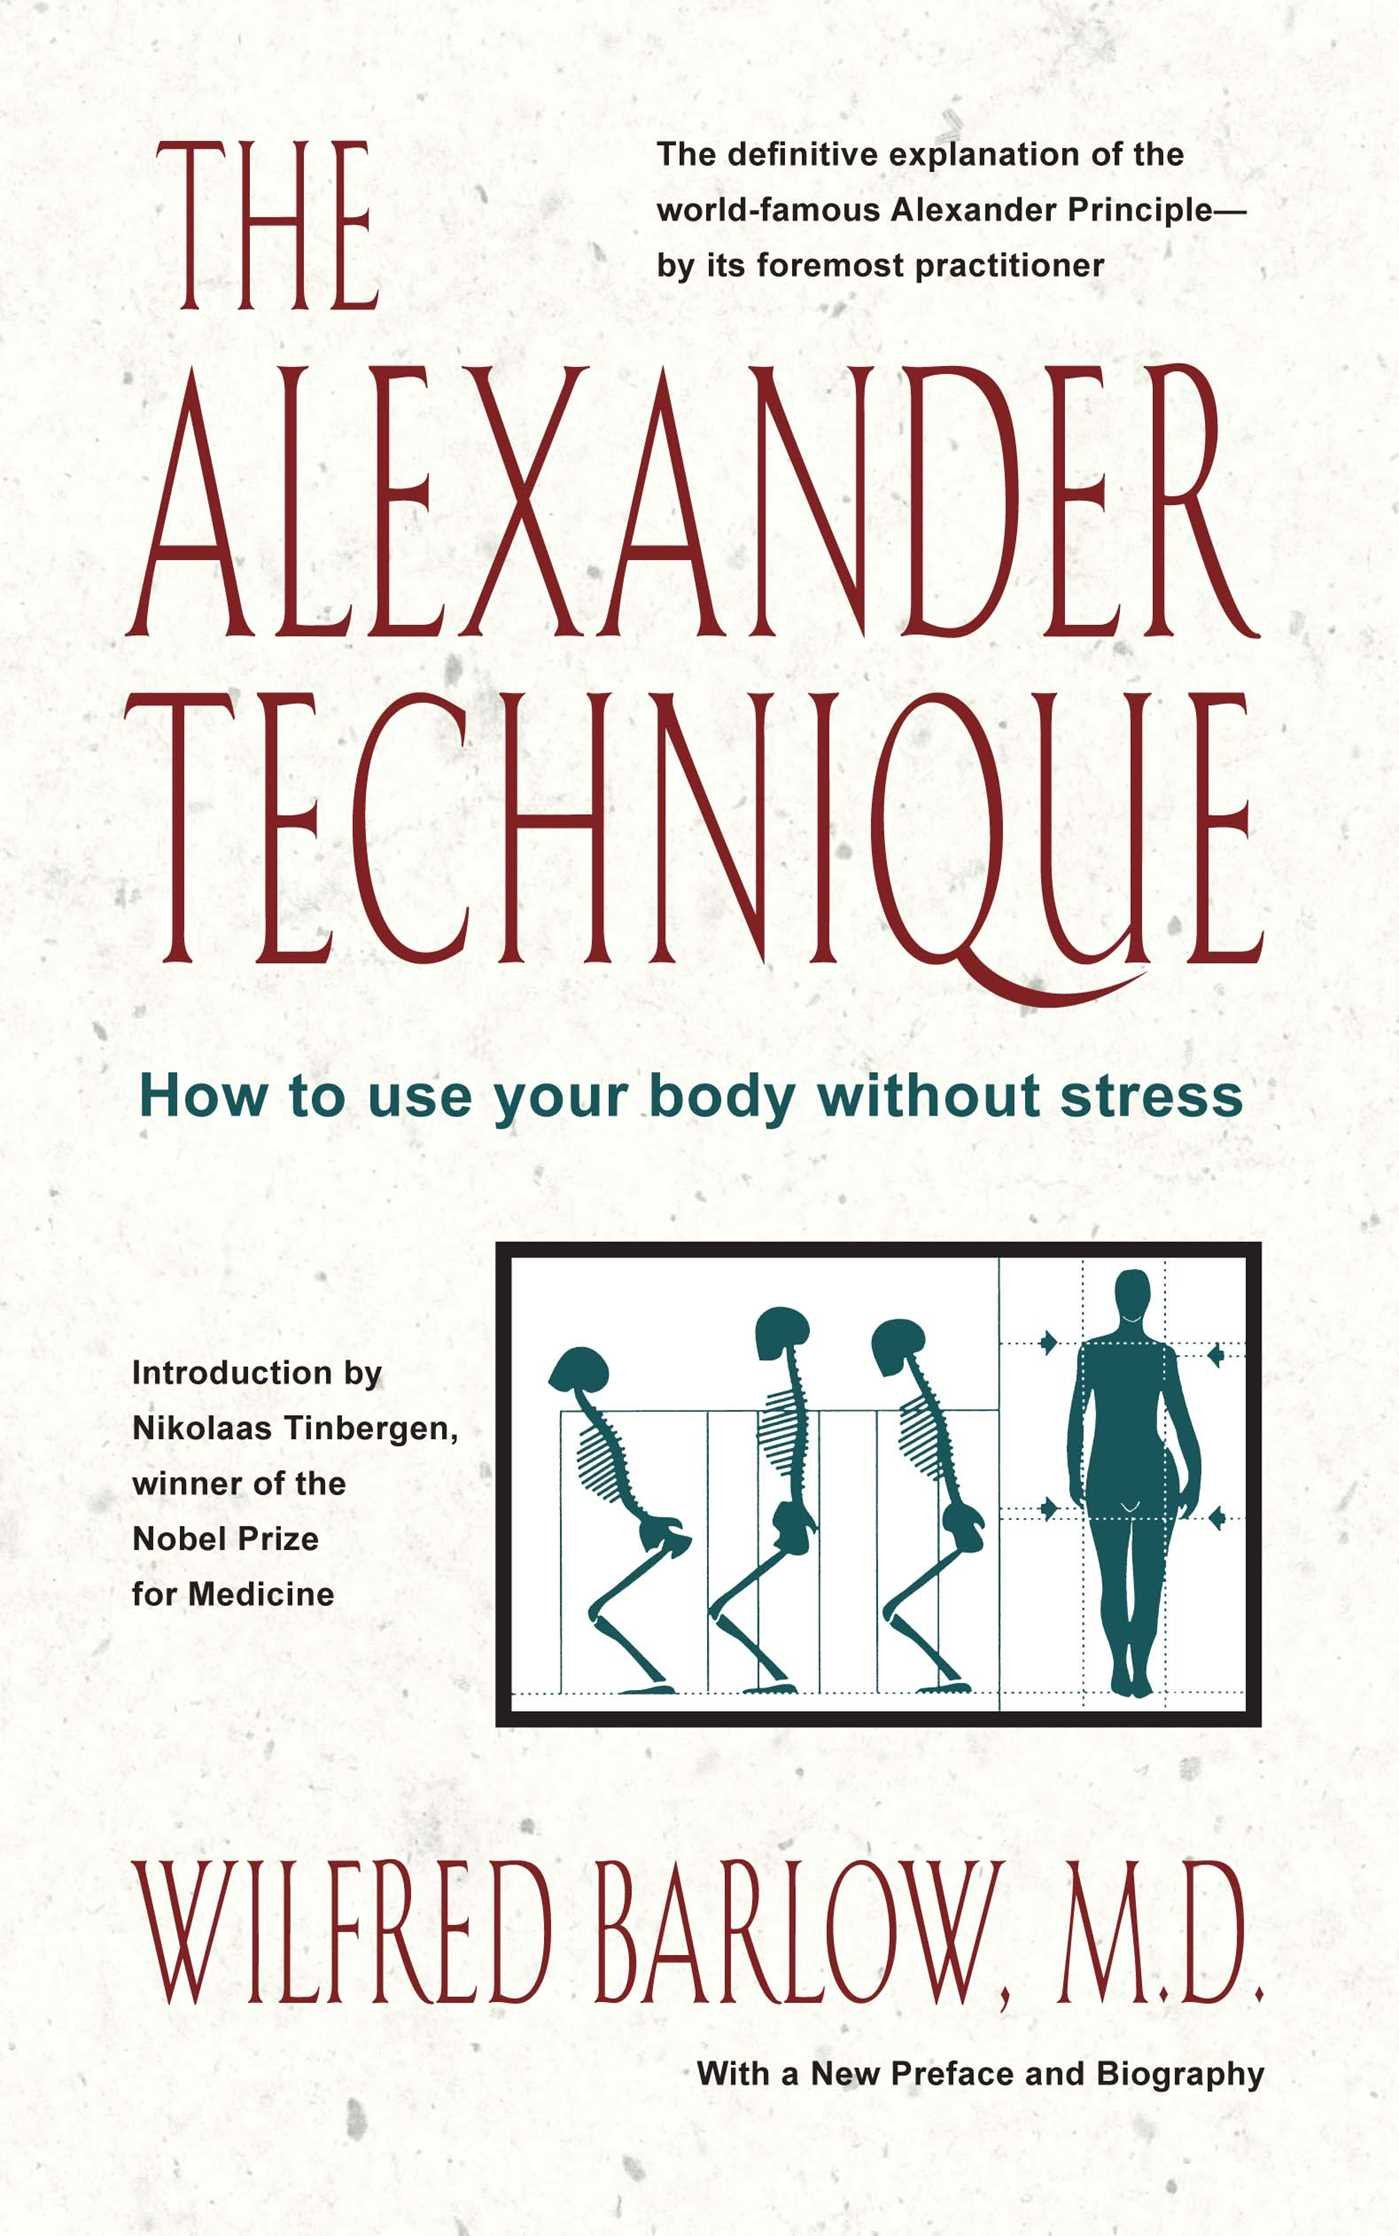 The Alexander principle, how to use your body without stress